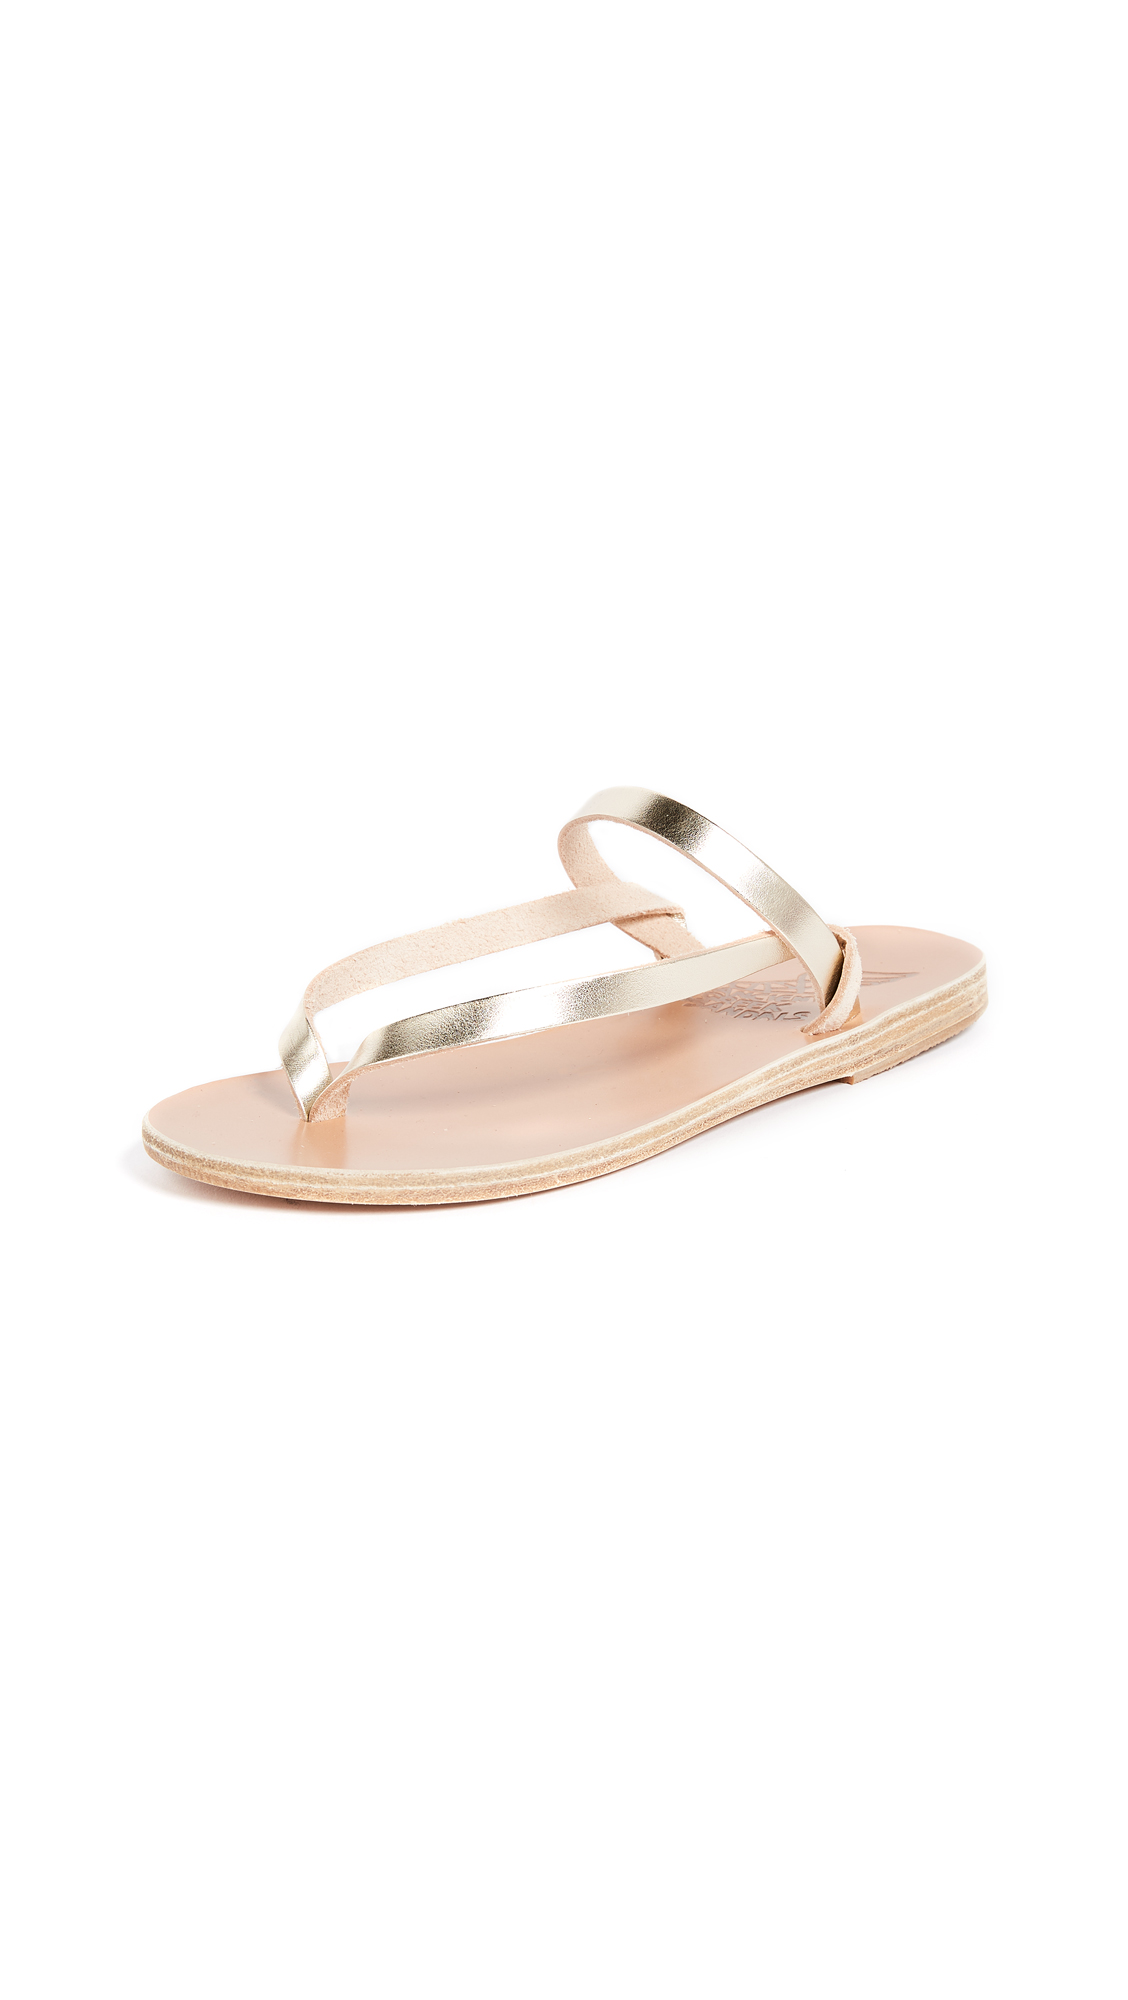 Buy Ancient Greek Sandals Mirsini Thong Sandals online, shop Ancient Greek Sandals